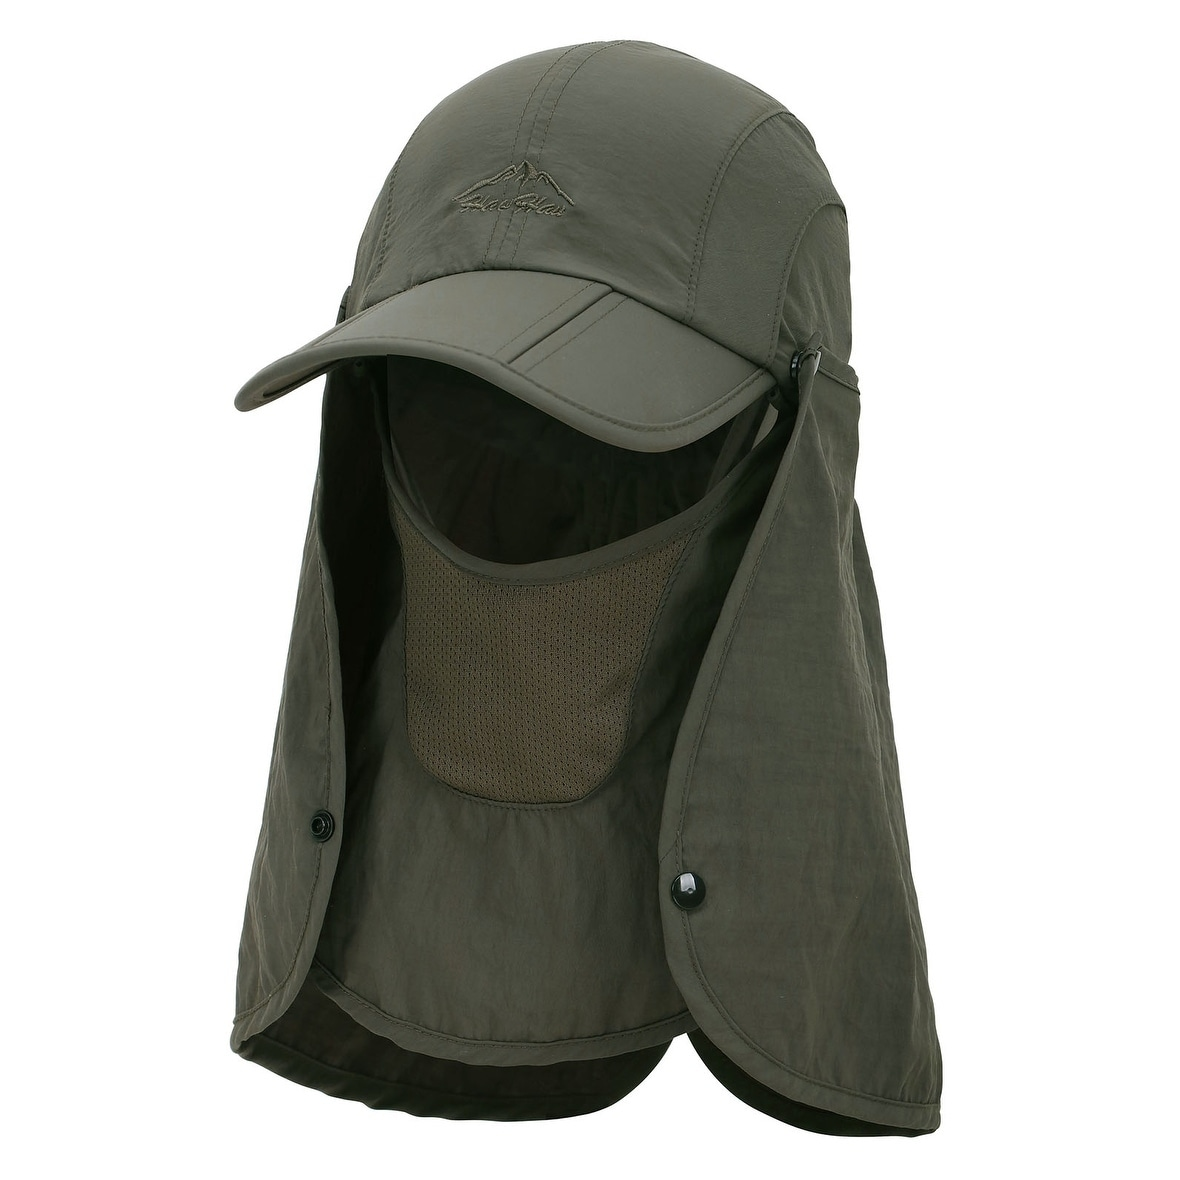 025843fd7a75f 360° Sun Protection Hat-Fishing Hat with Removable Neck and Face Flap